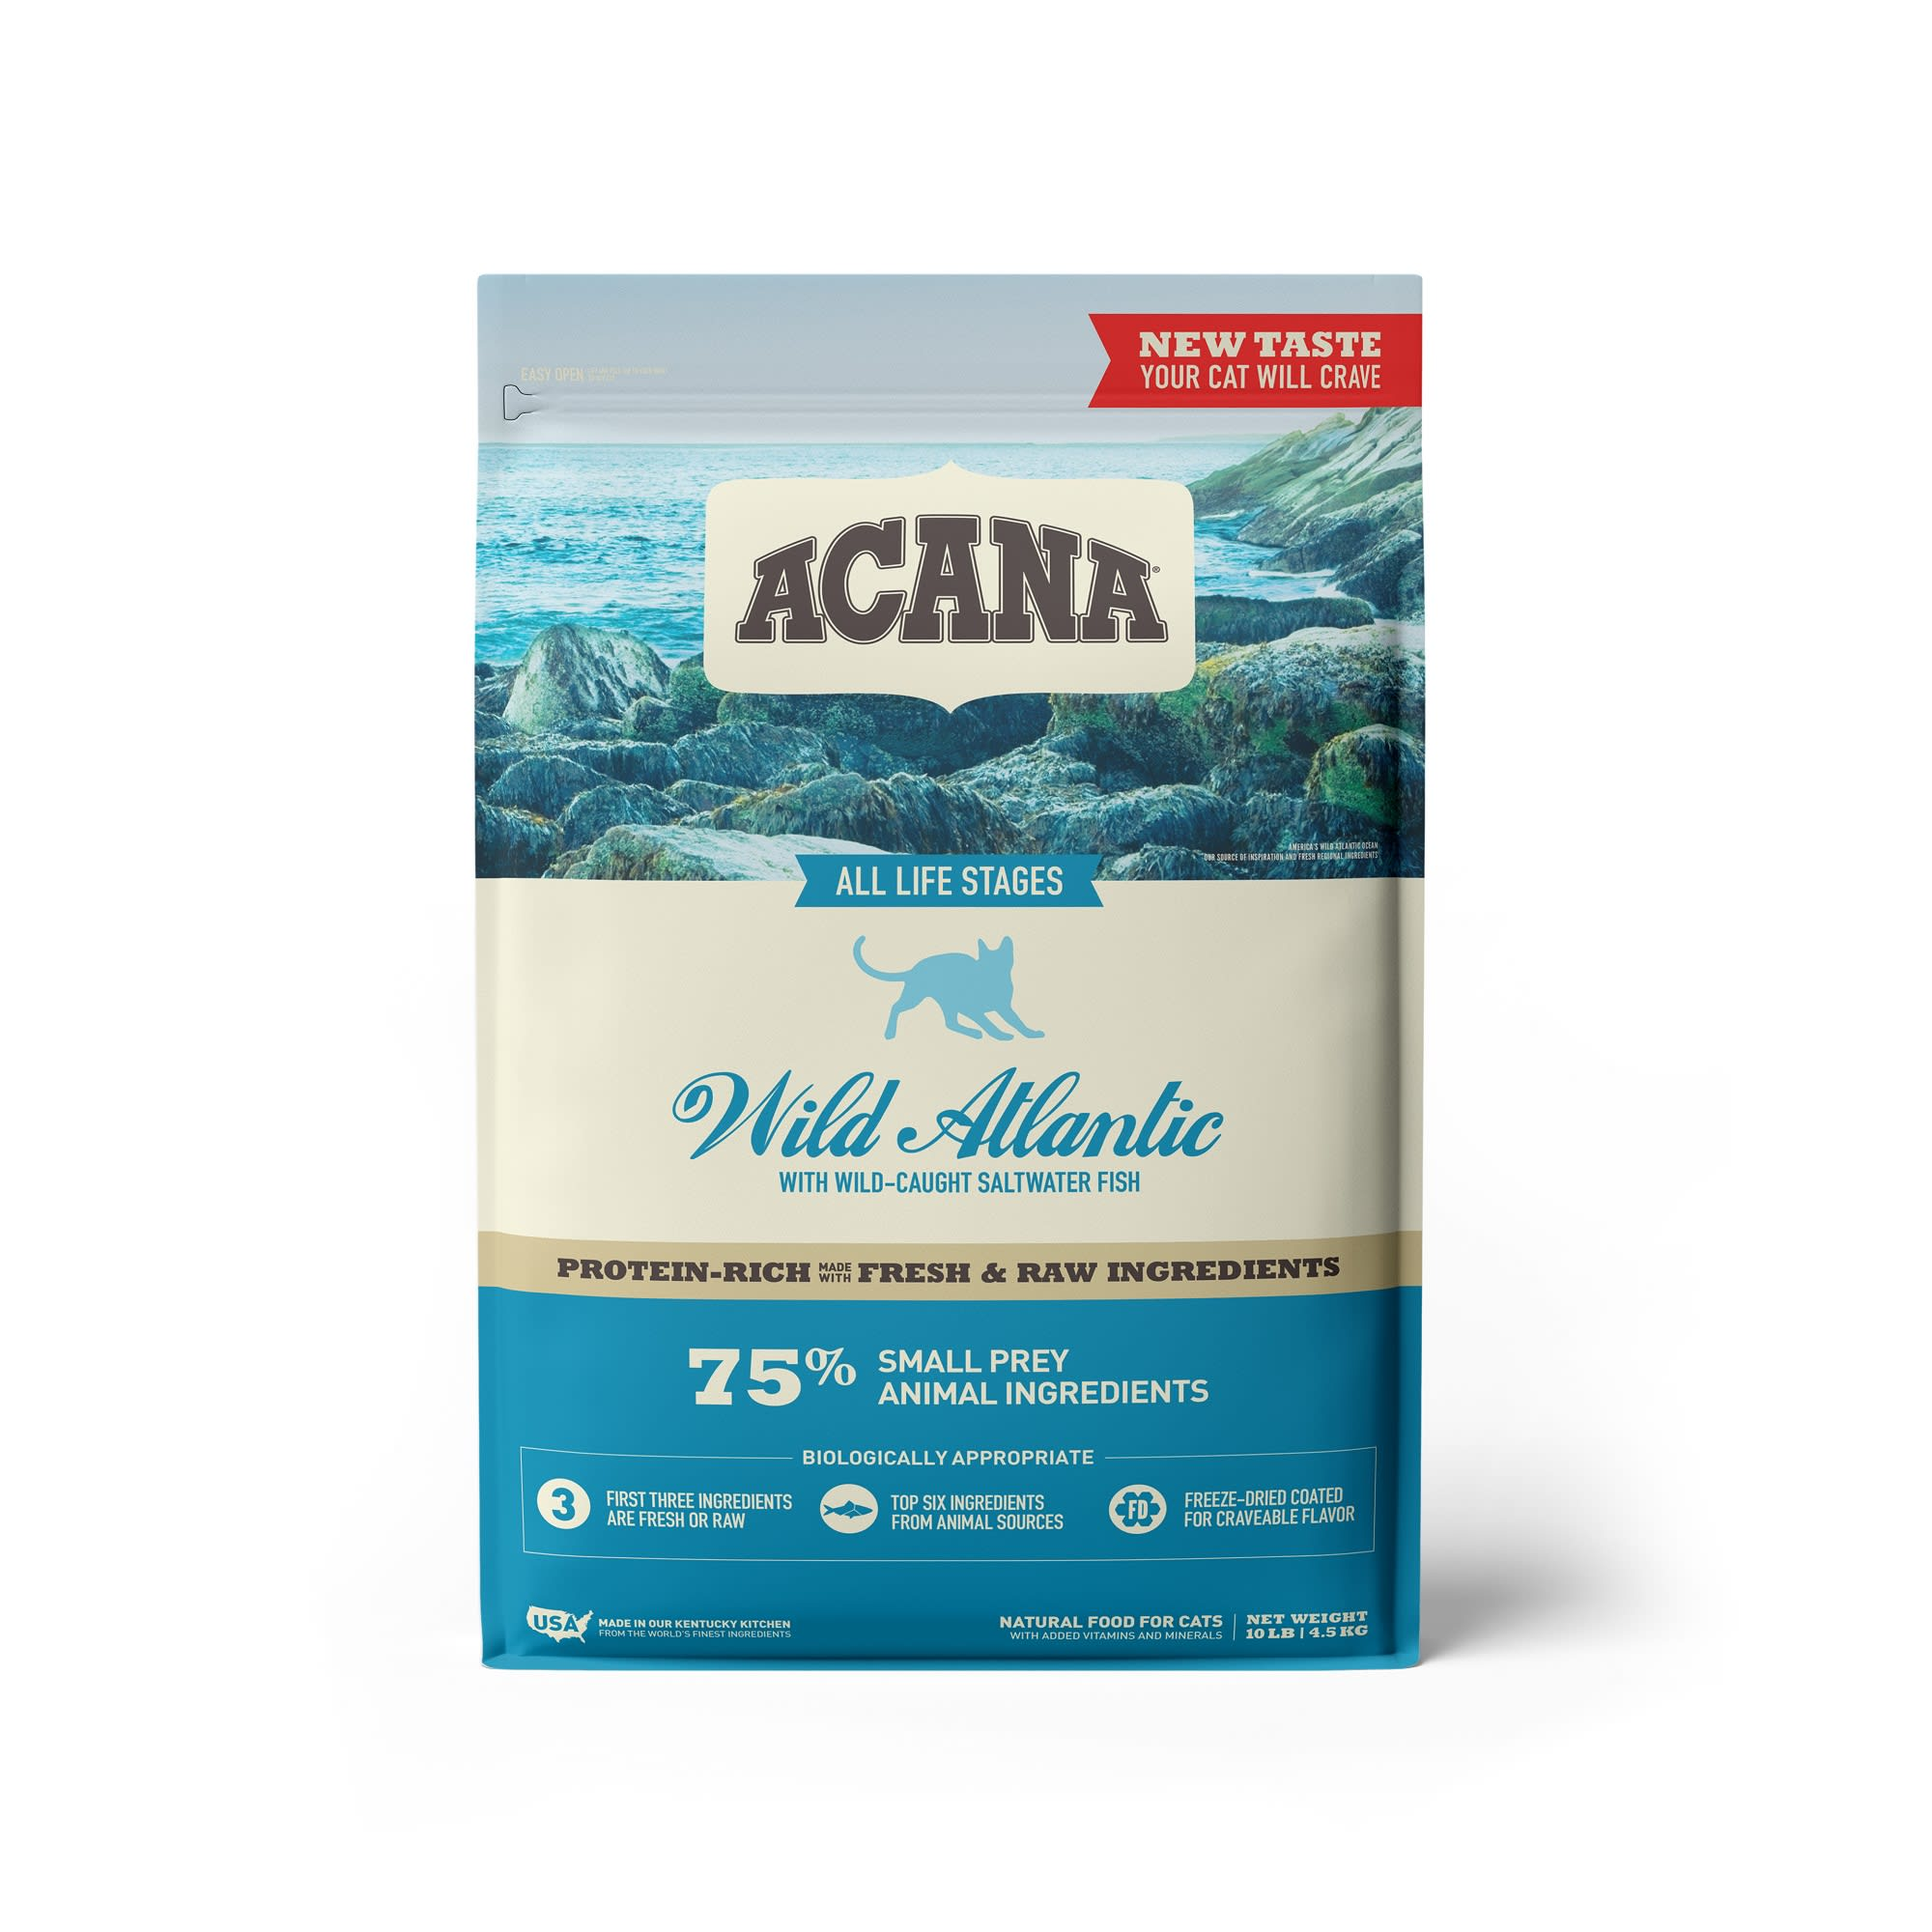 ACANA Grain-Free Wild Atlantic Saltwater Fish with Freeze-Dried Liver Dry Cat Food